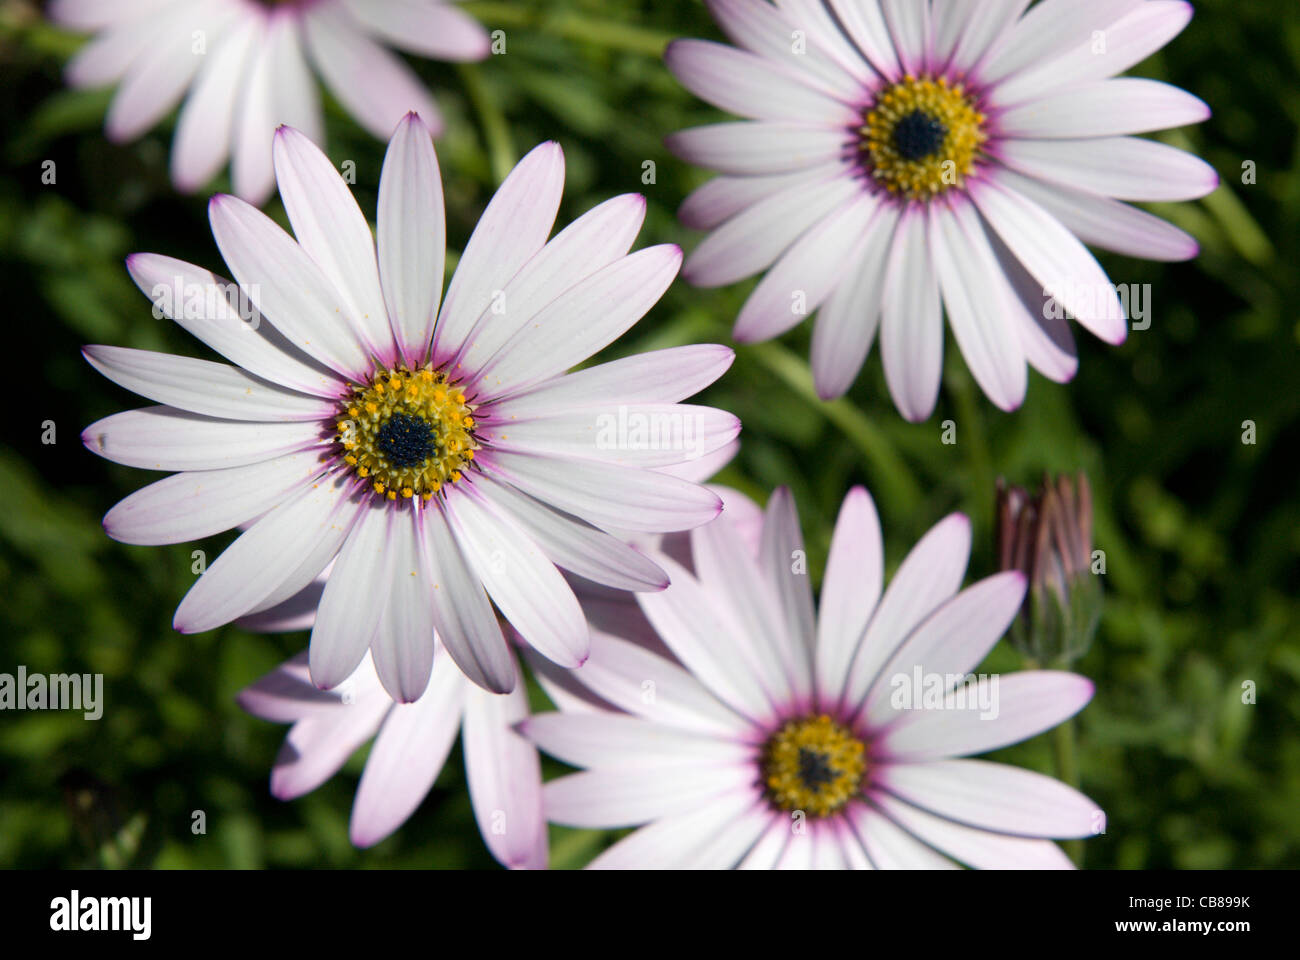 The Delicate Flowers Of The Daisy Like Osteospermum Open In The